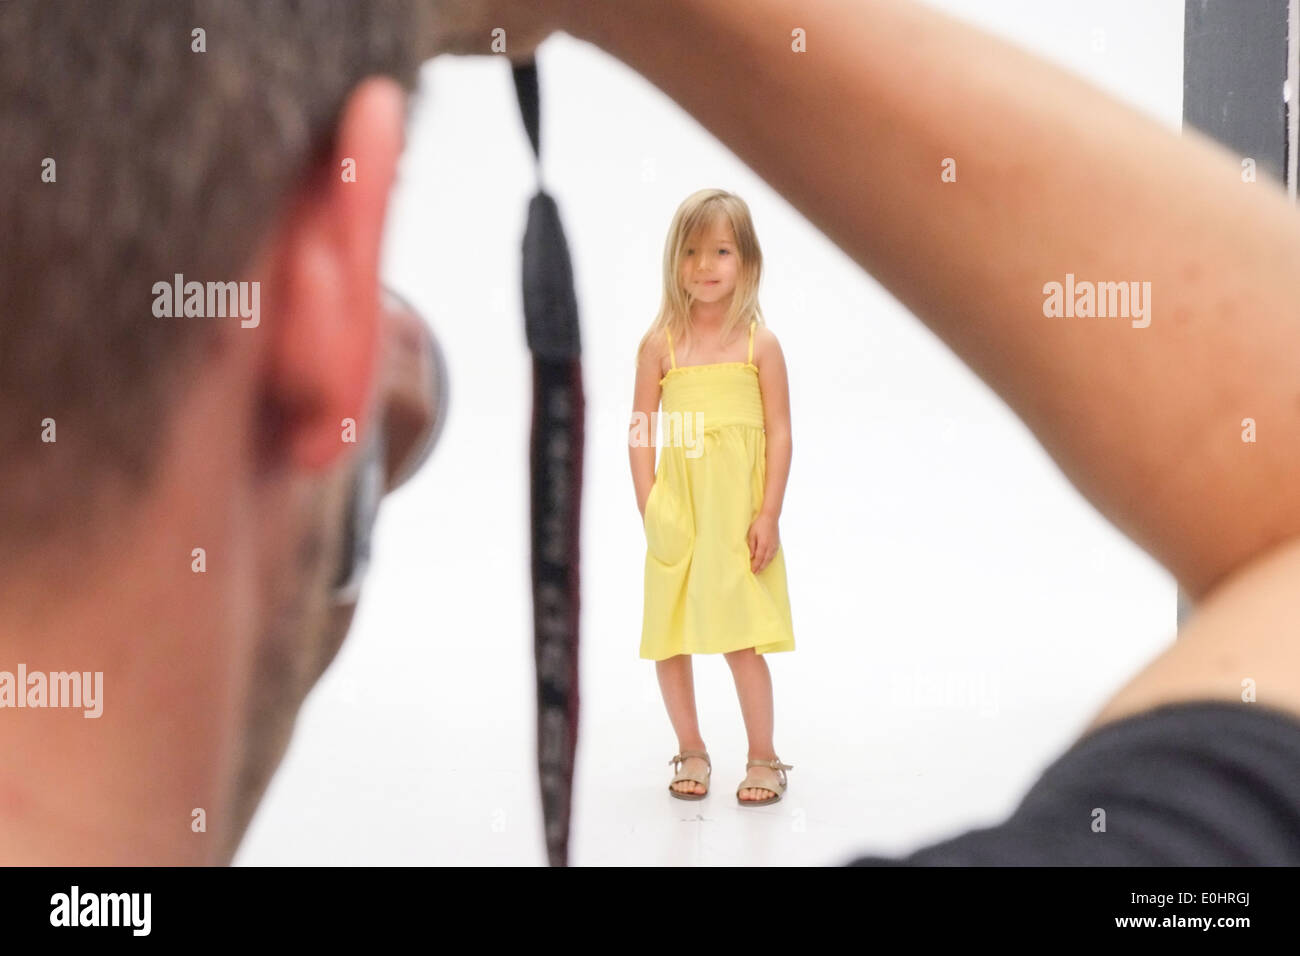 Young female child during a photoshoot for a fashion company - Stock Image